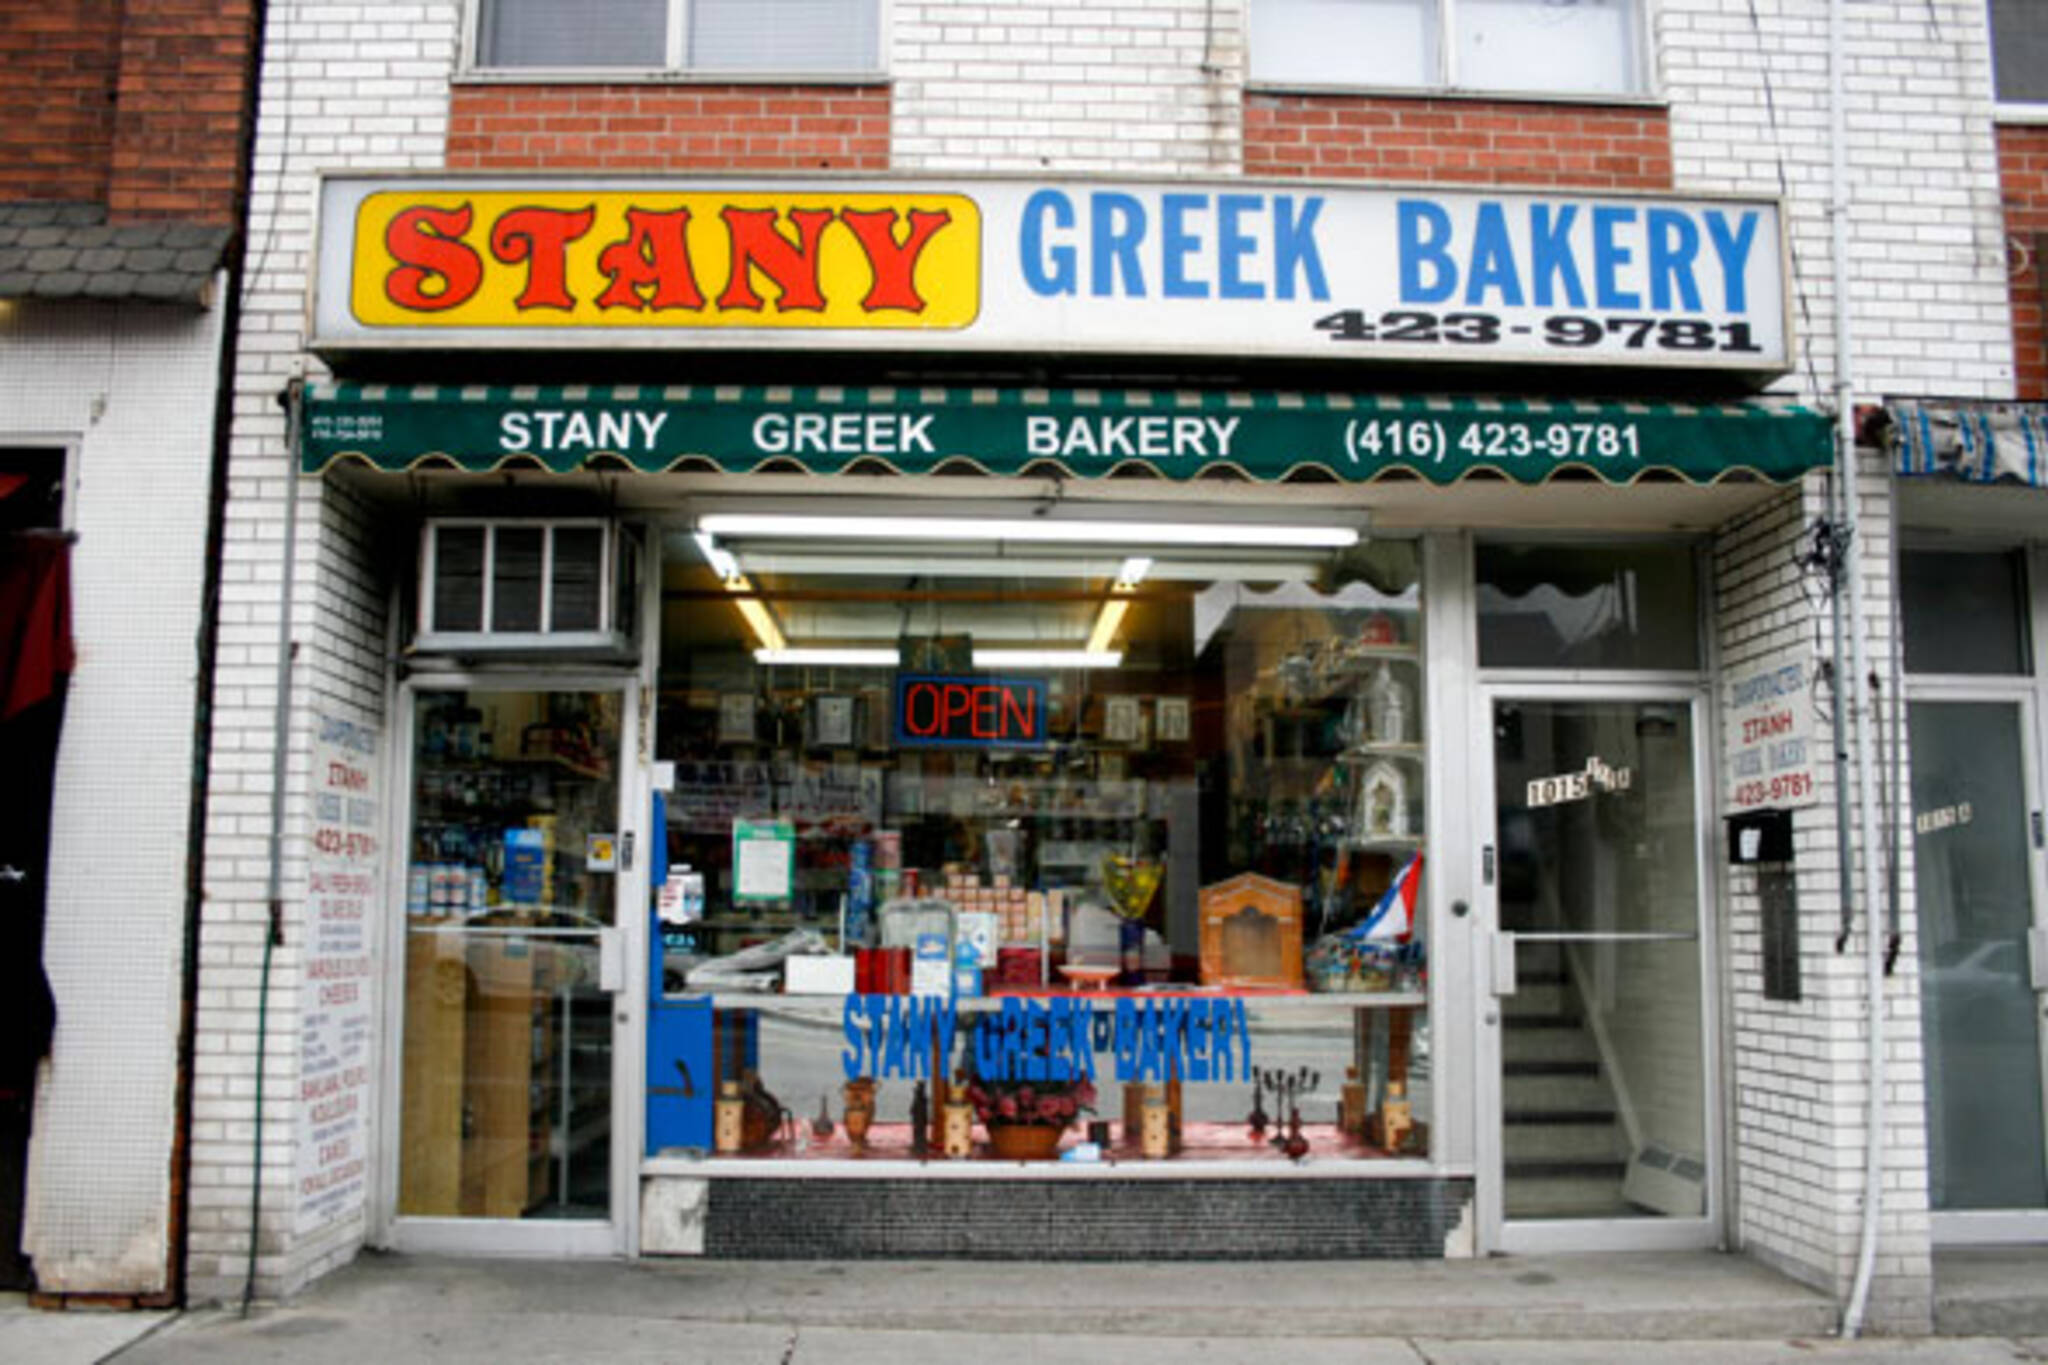 Stany Greek Bakery